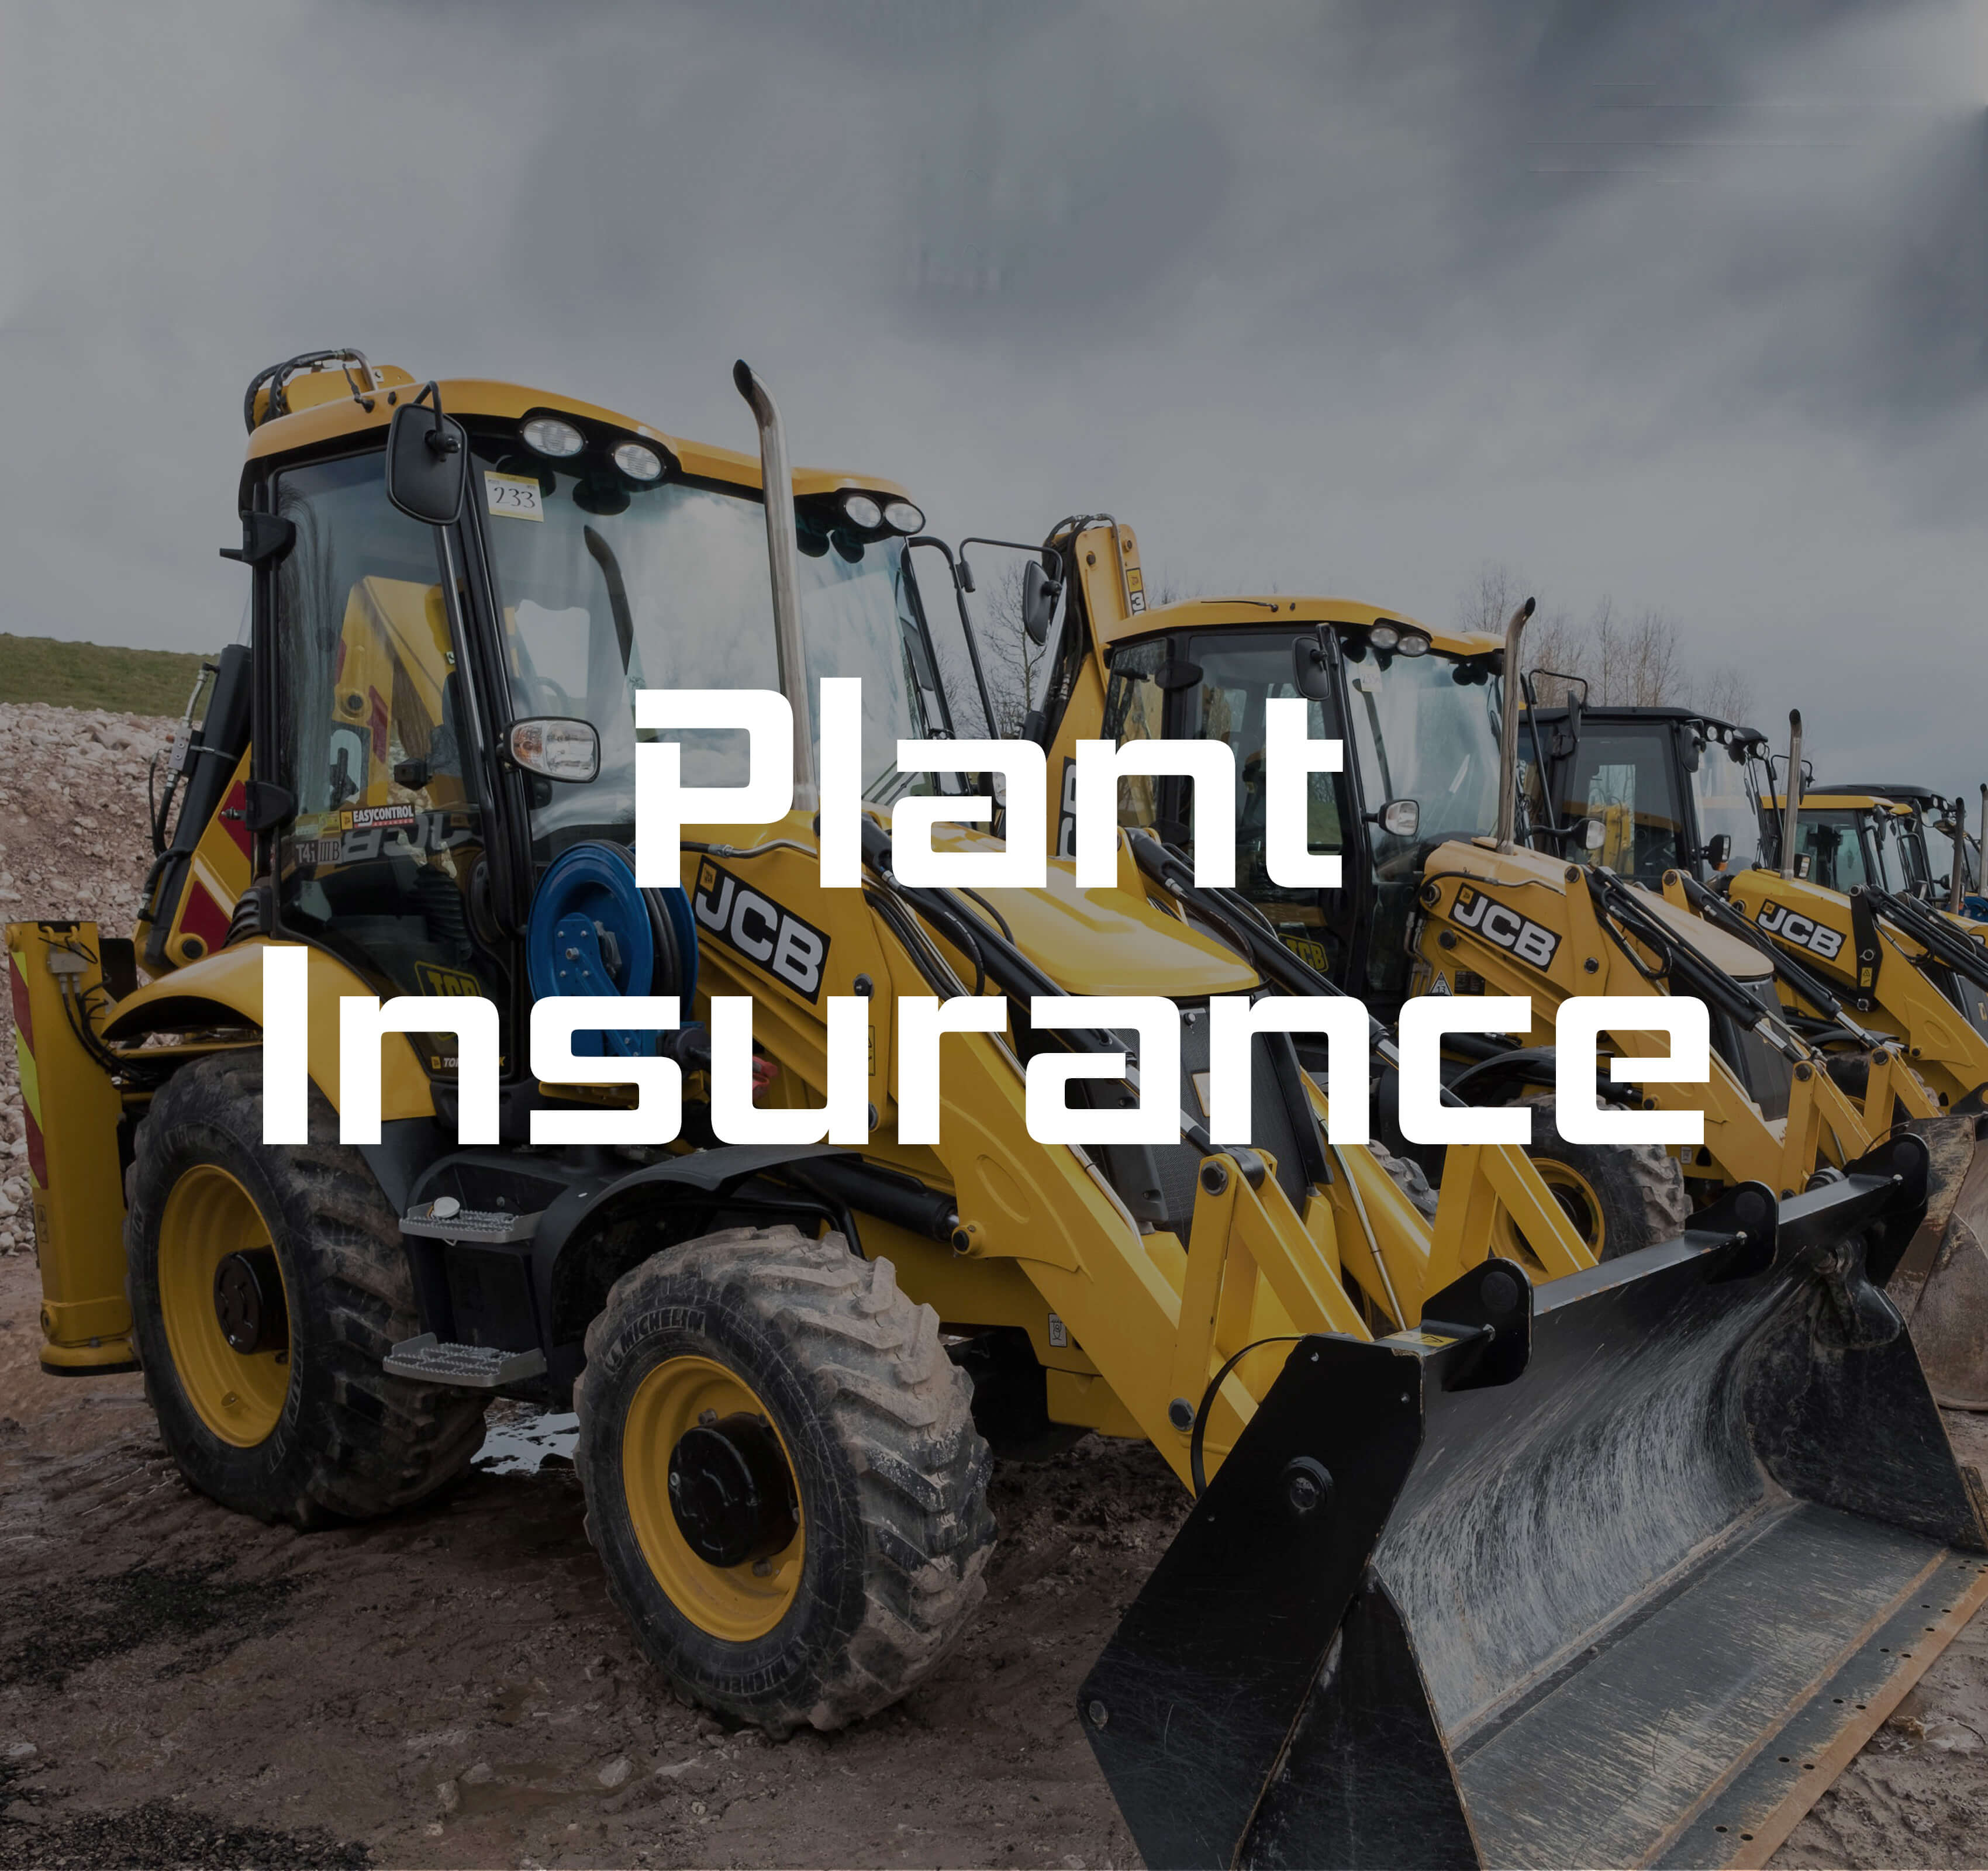 JCB insurance service 1 - Homepage